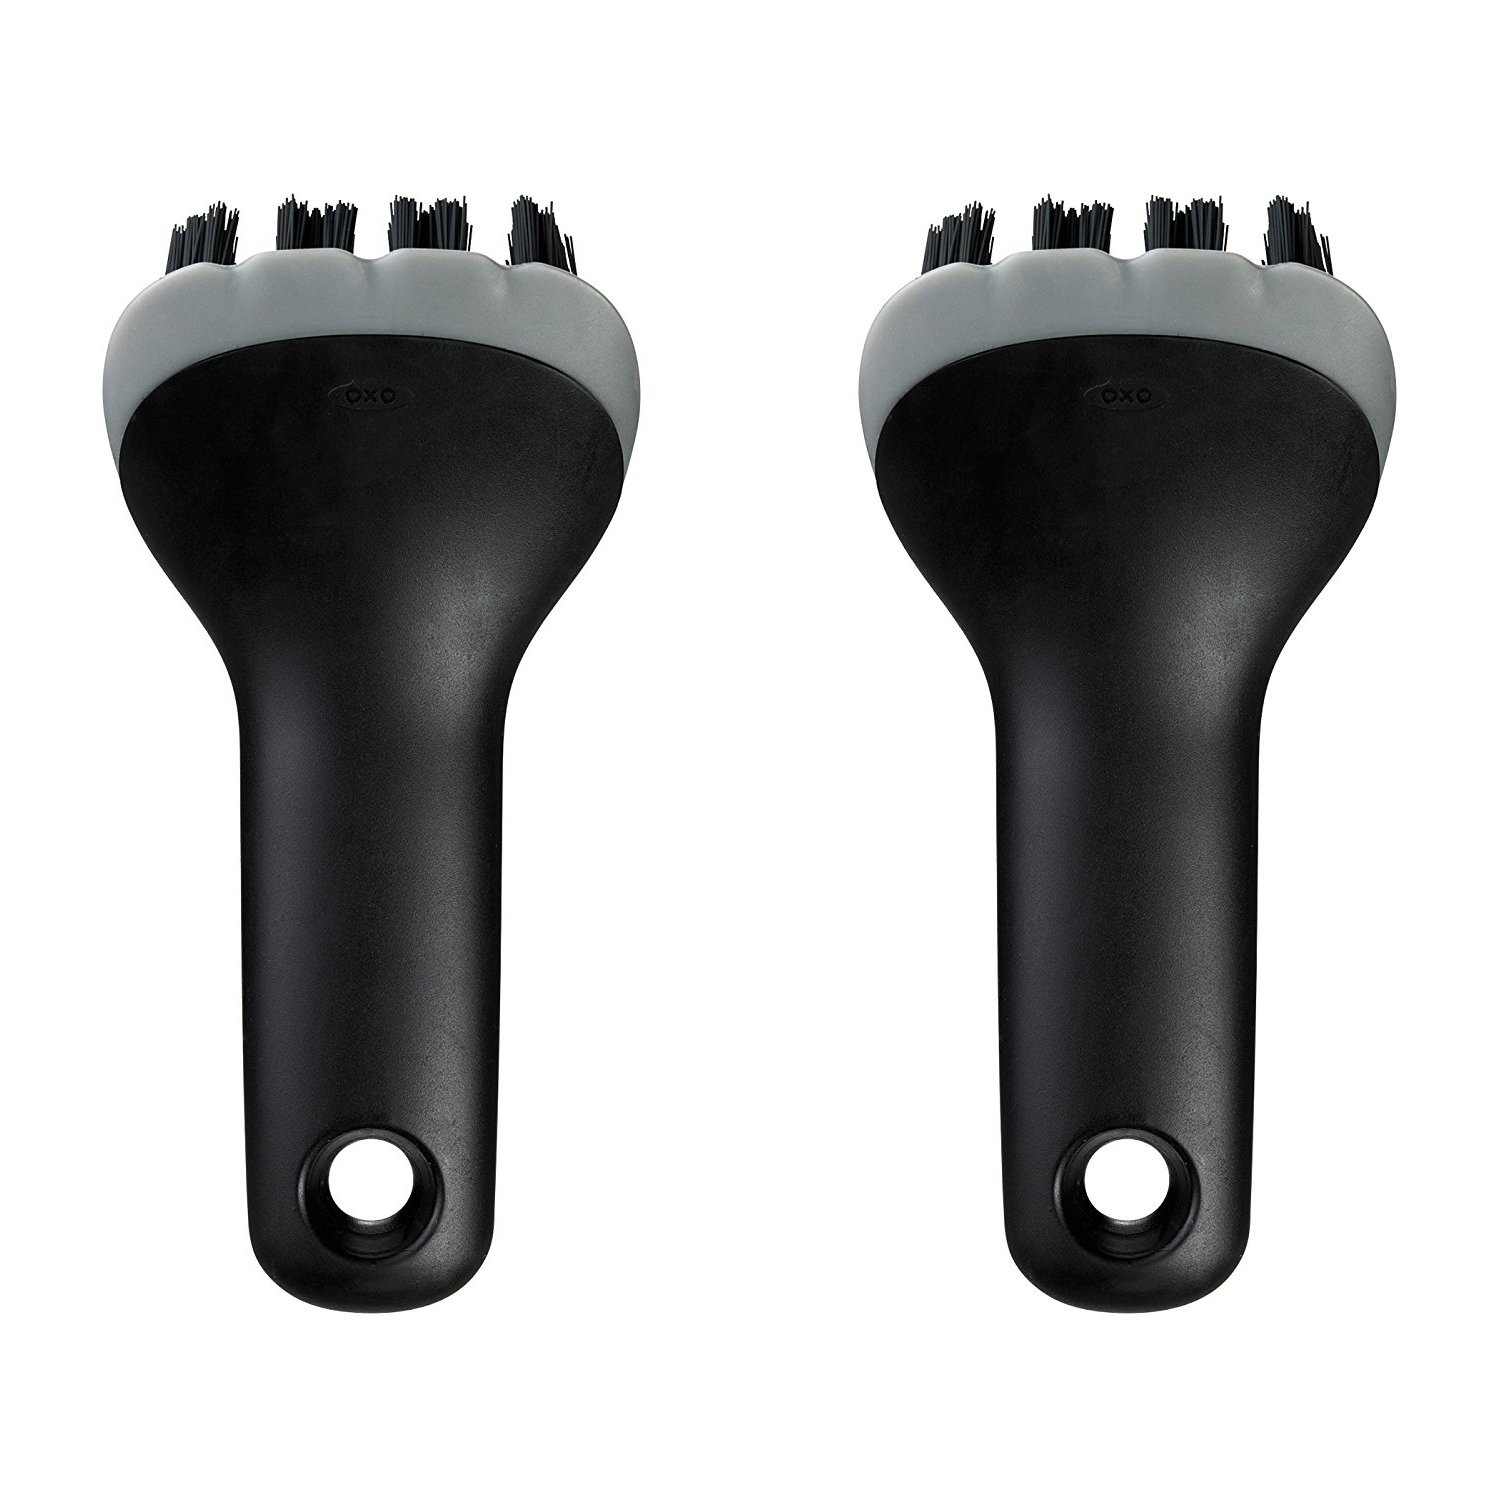 OXO Good Grips Electric Grill and Panini Press Brush, Set of 2